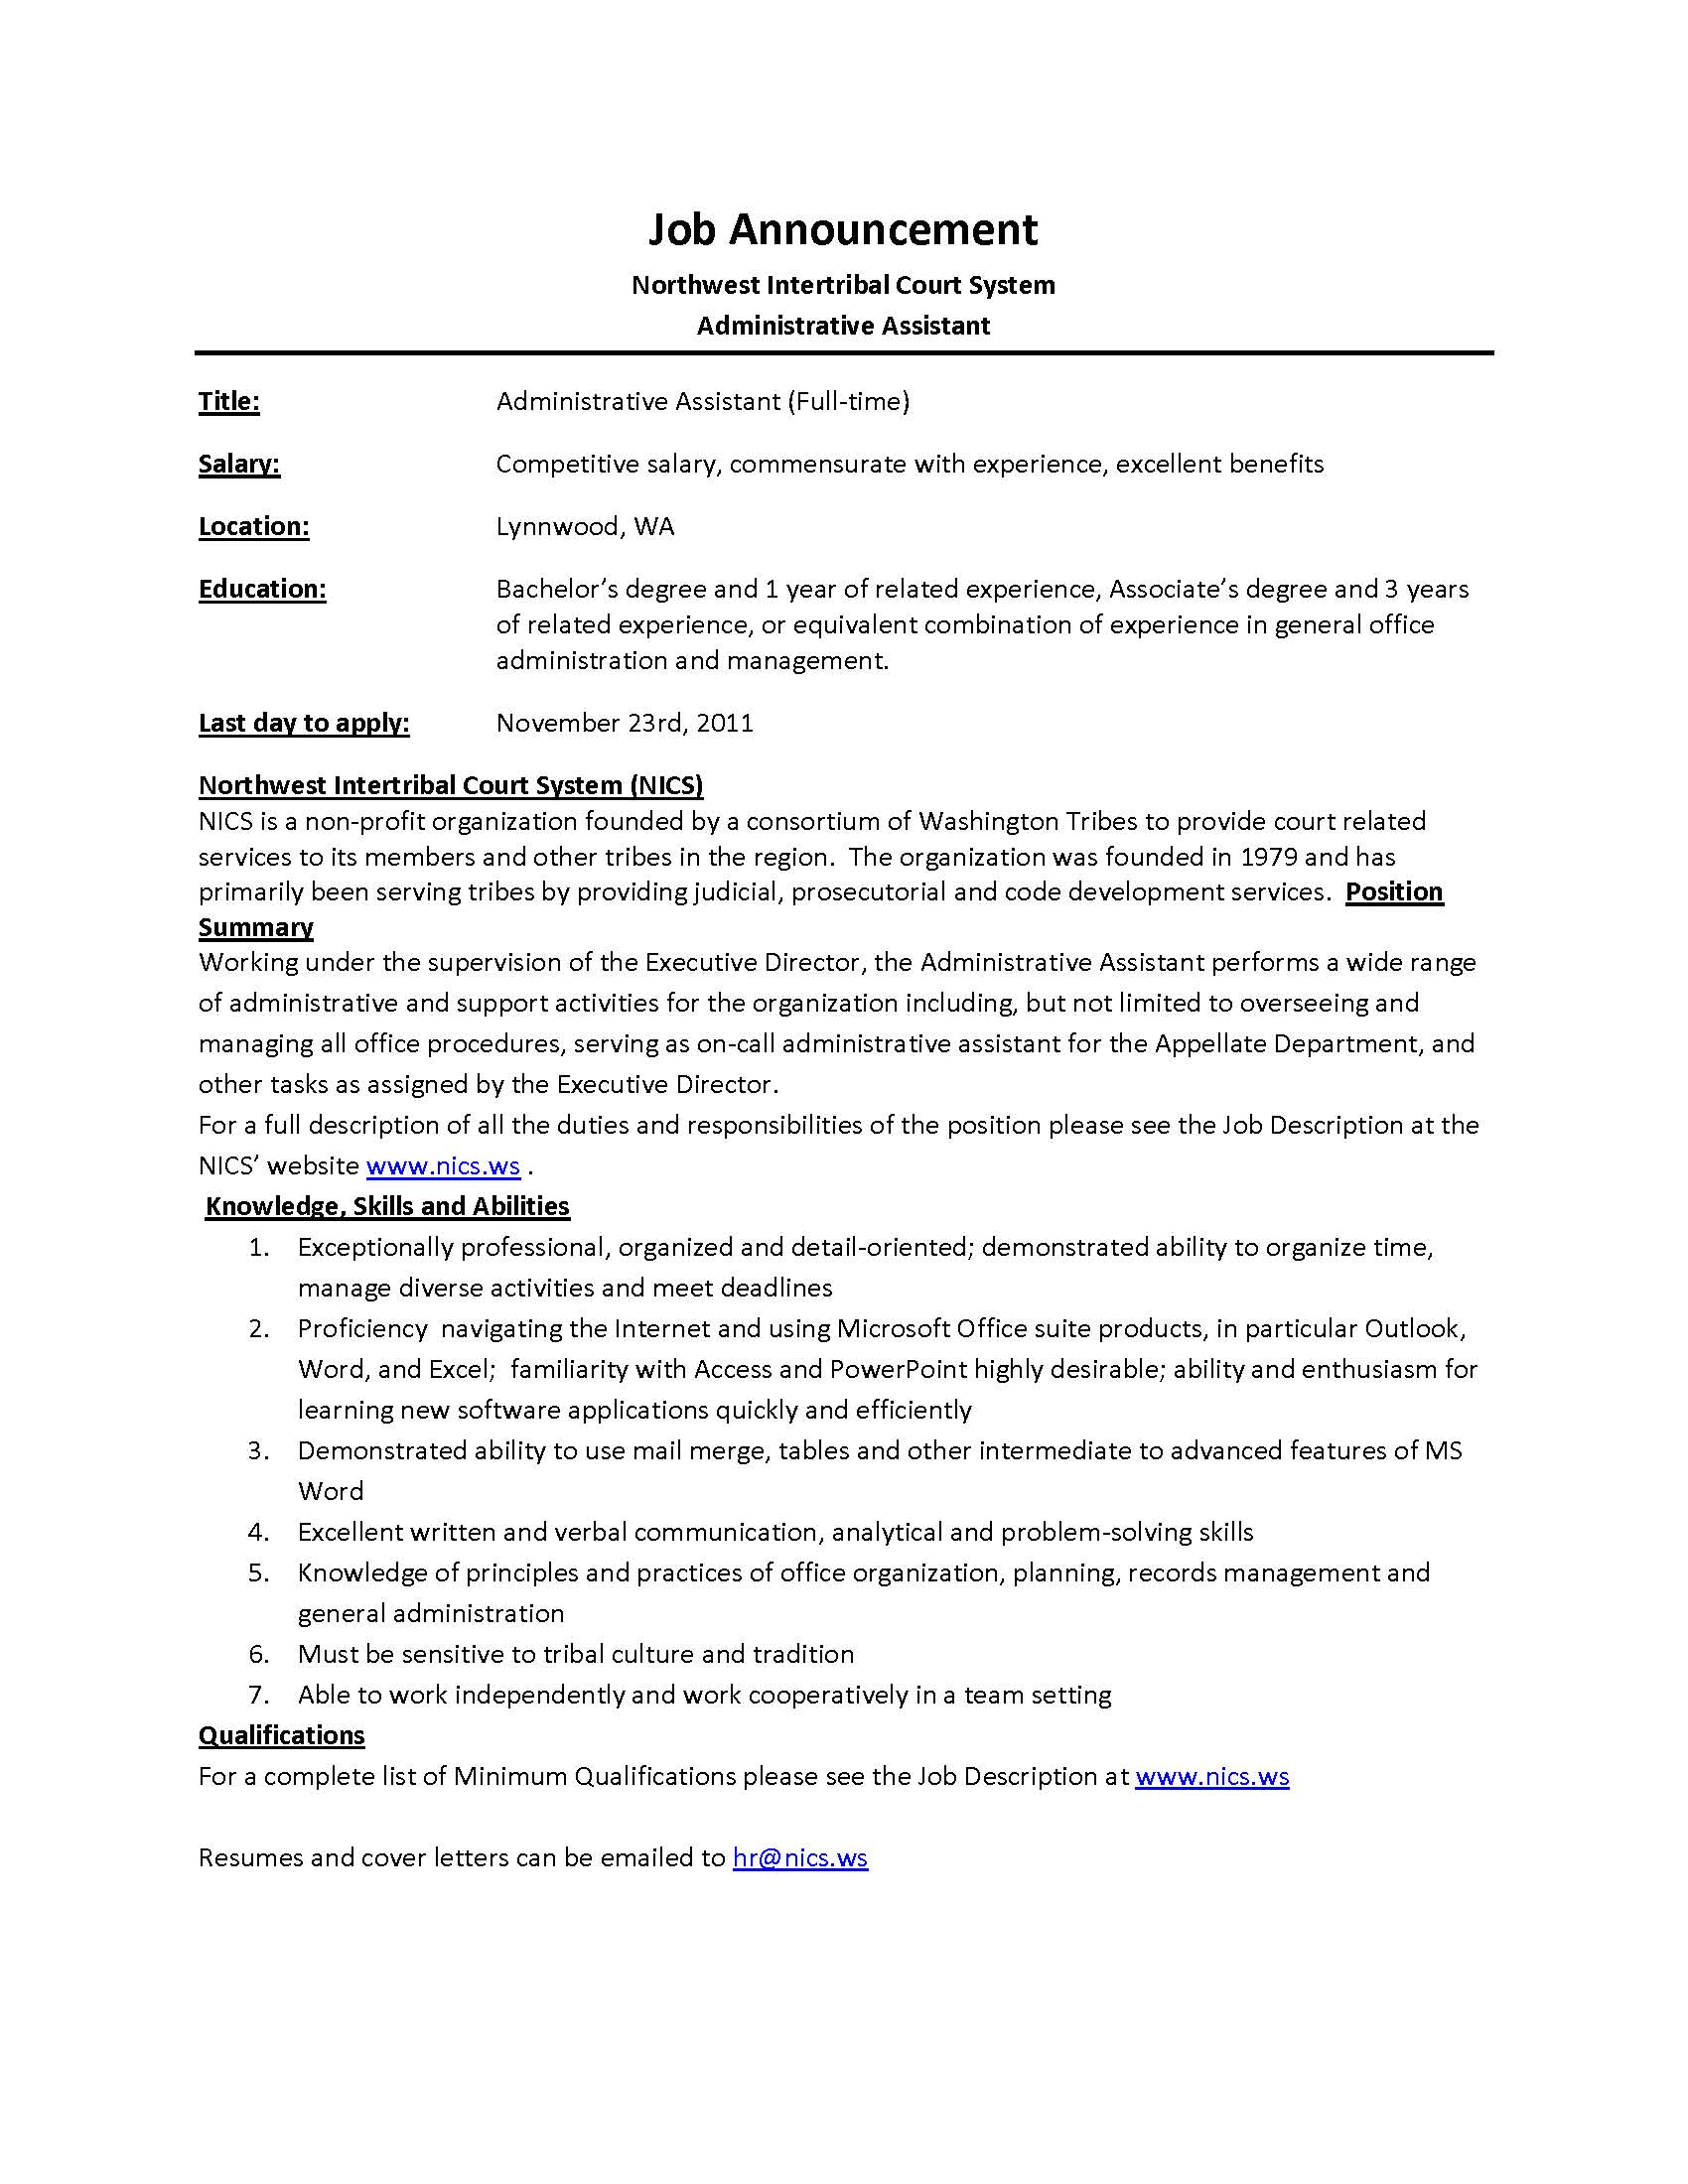 Administrative assistant job description office sample - Insurance compliance officer job description ...